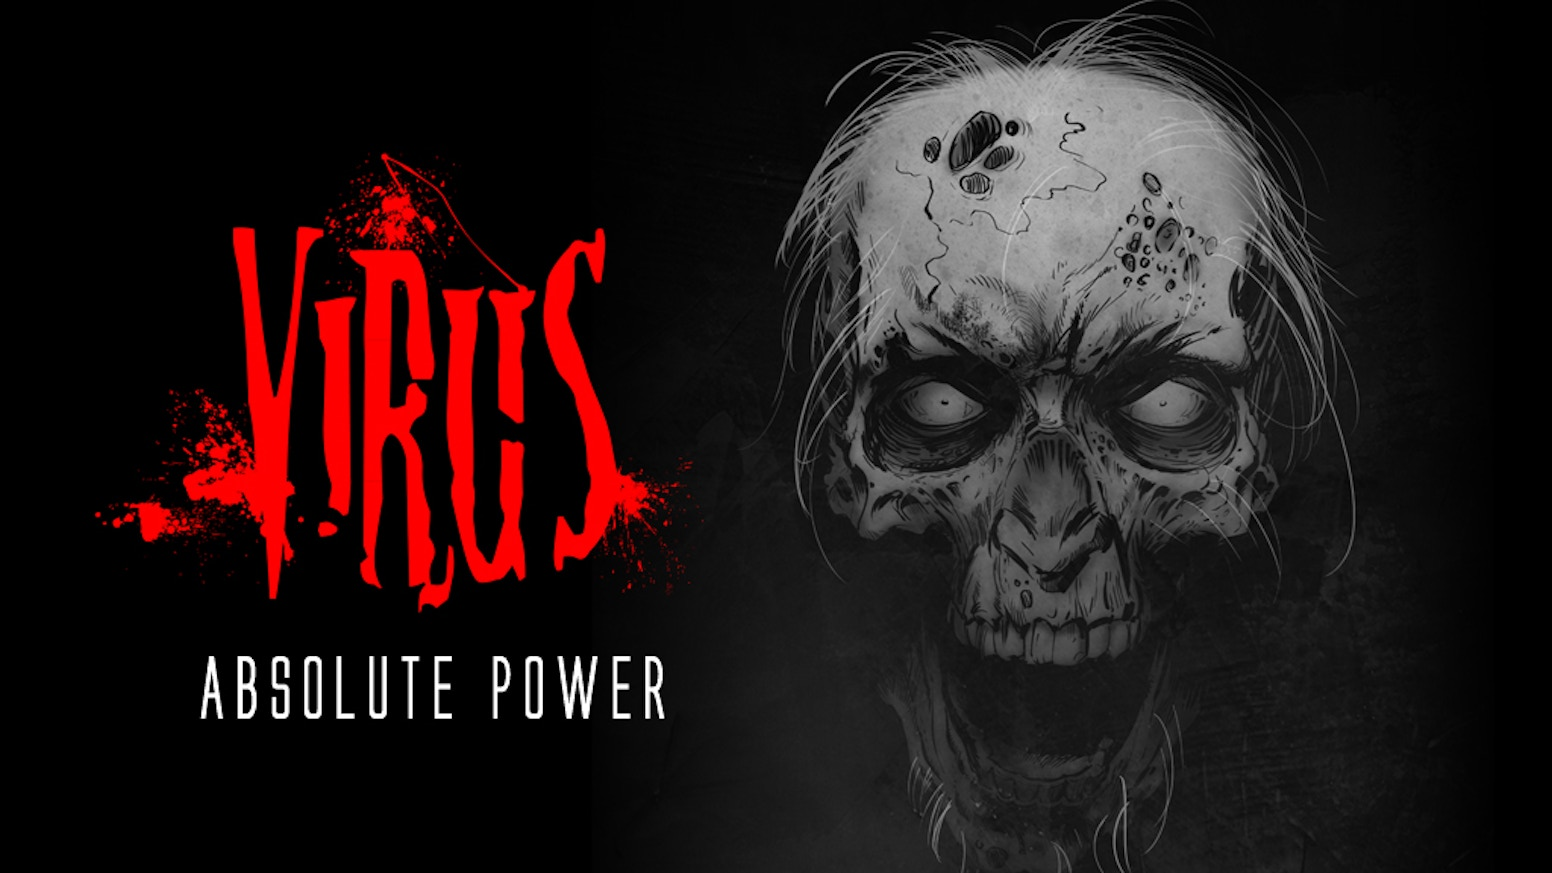 Third chapter of the zombie miniseries Virus. A raw black and white apocalyptic zombieseries laced with a touch of magic.